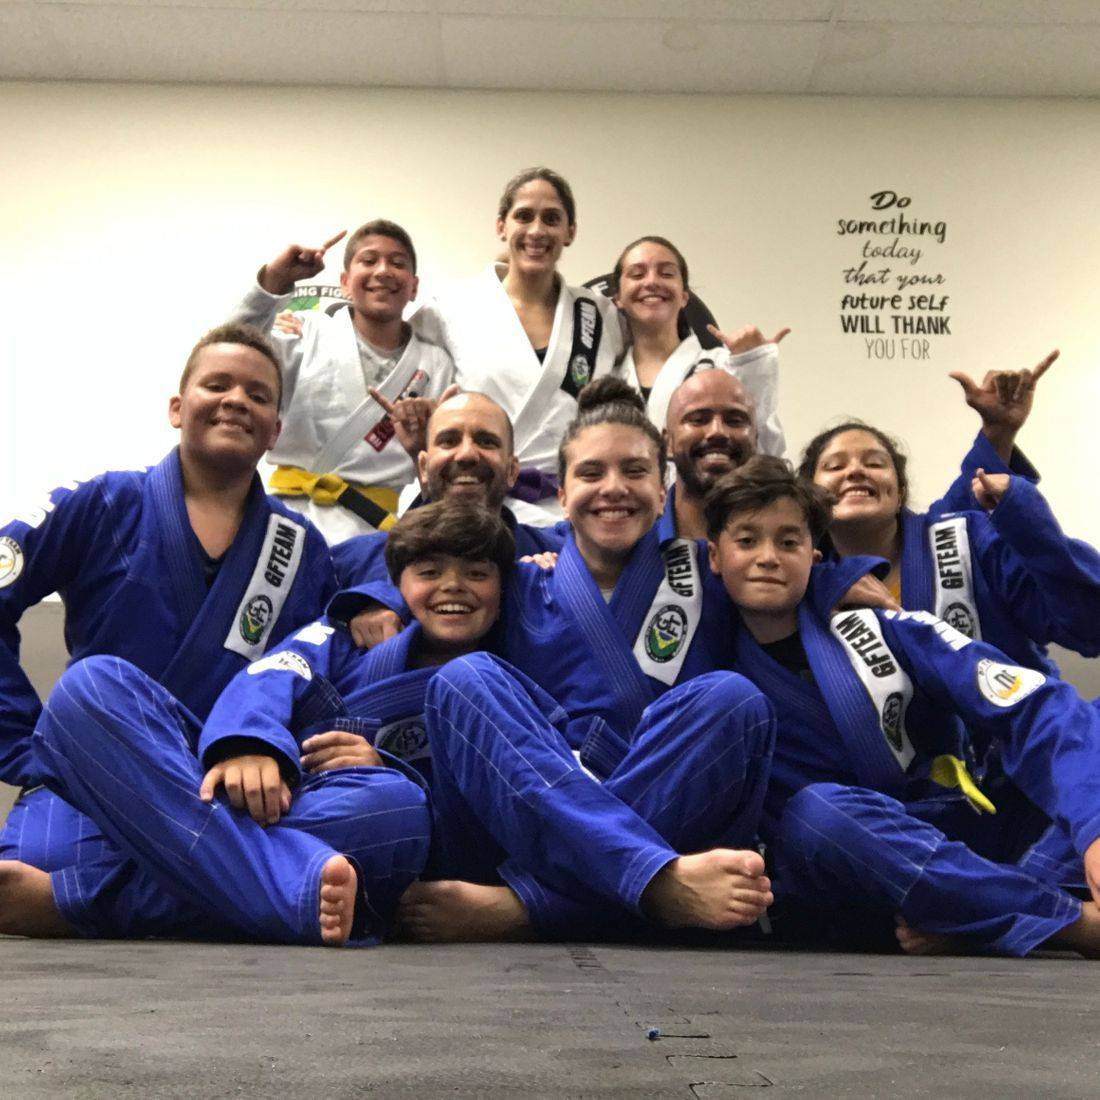 We provide to our  members all the benefits of our art through the routine and daily practice of Jiu Jitsu.  Classes for KIDS (4 to 9 years old) and adult all levels. Jiu Jitsu is a beautiful art